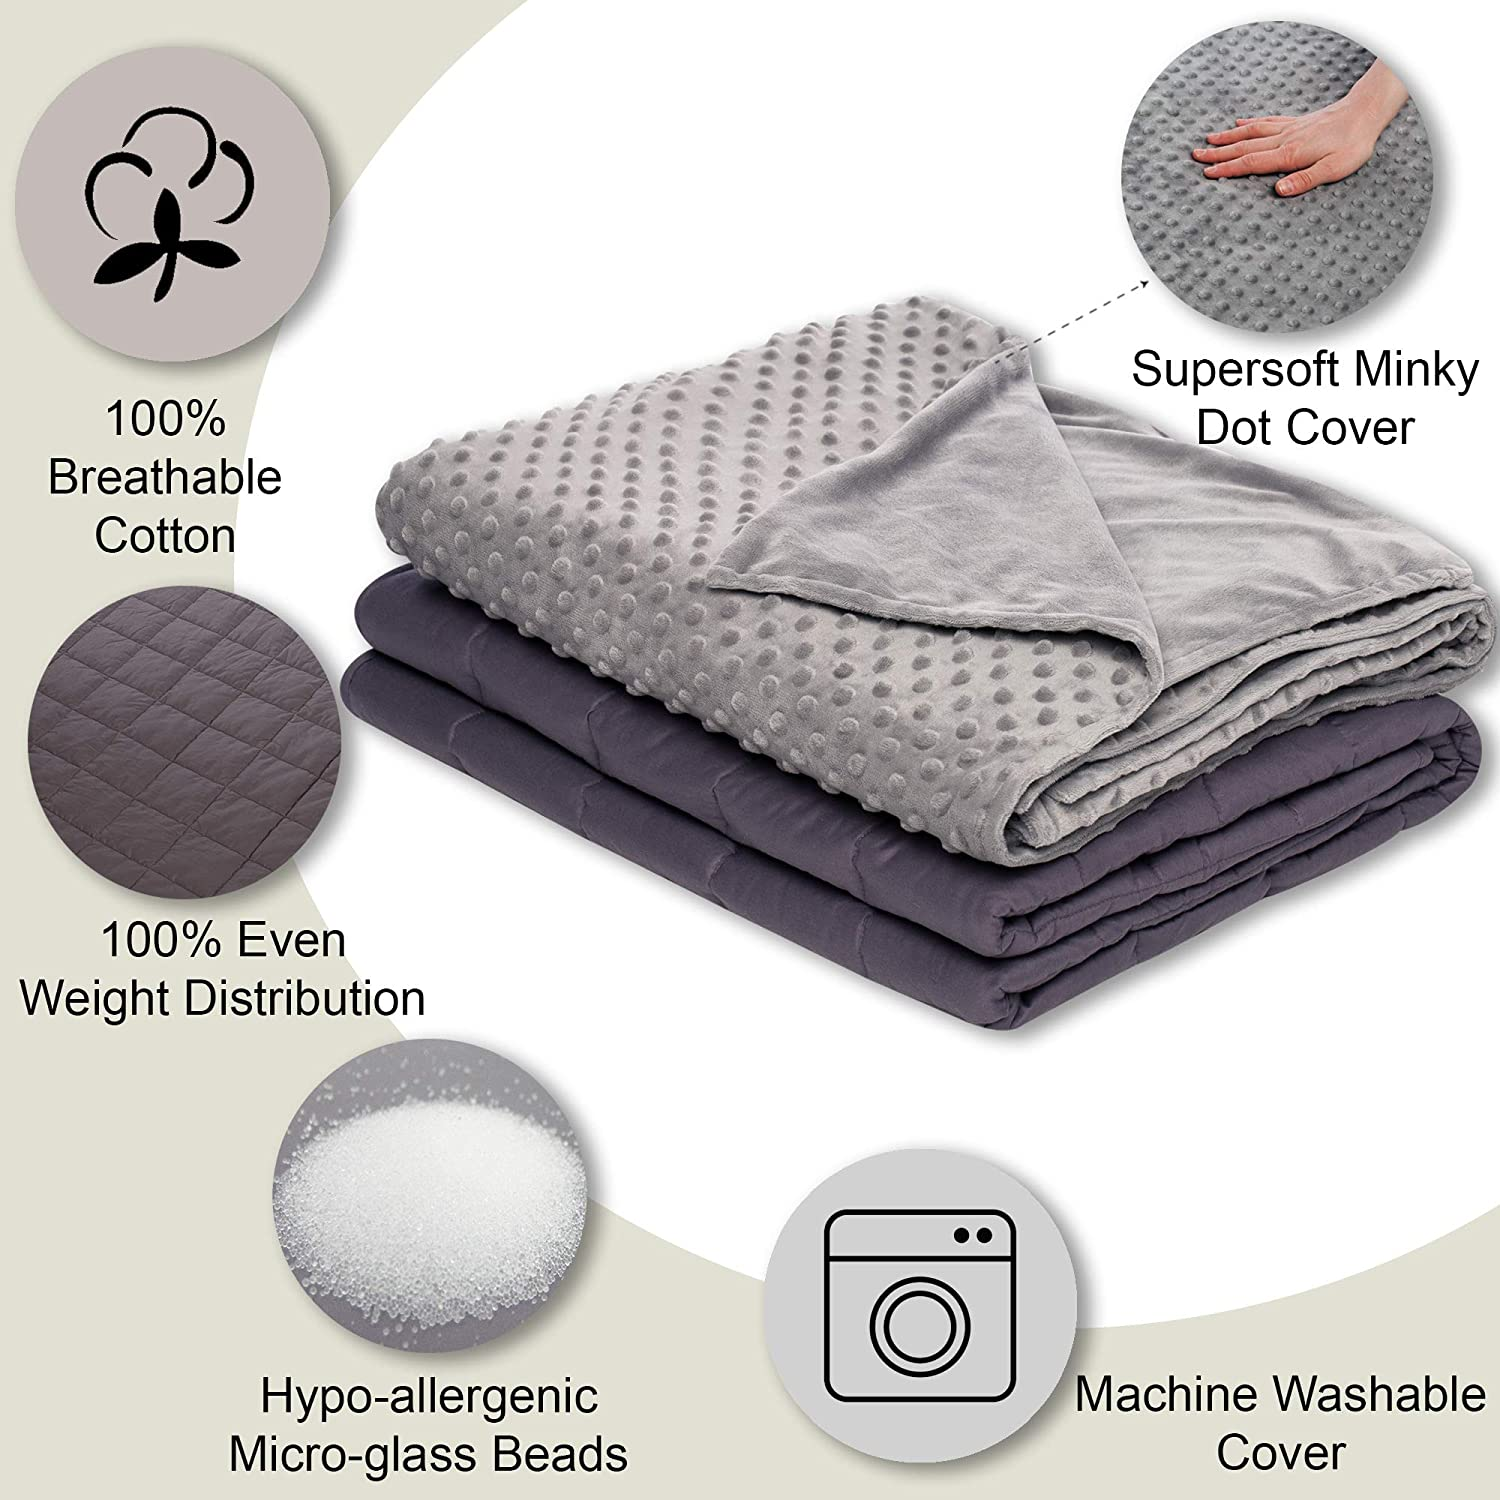 12 lbs Weighted Blanket with Removable Cover - 48 x 72 - Grey